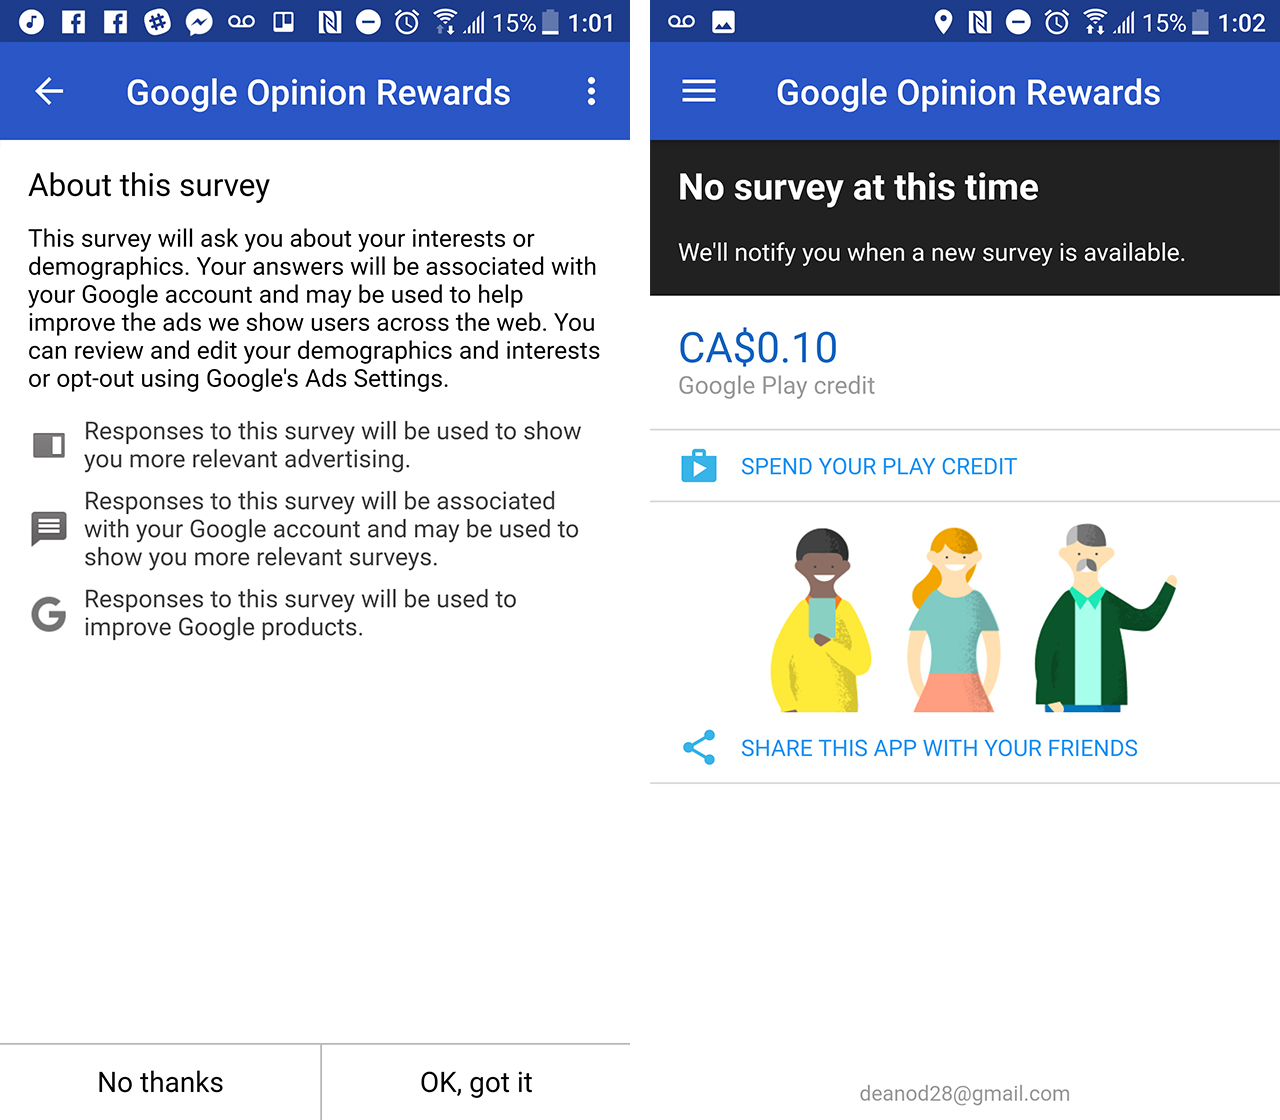 Google Opinions Rewards